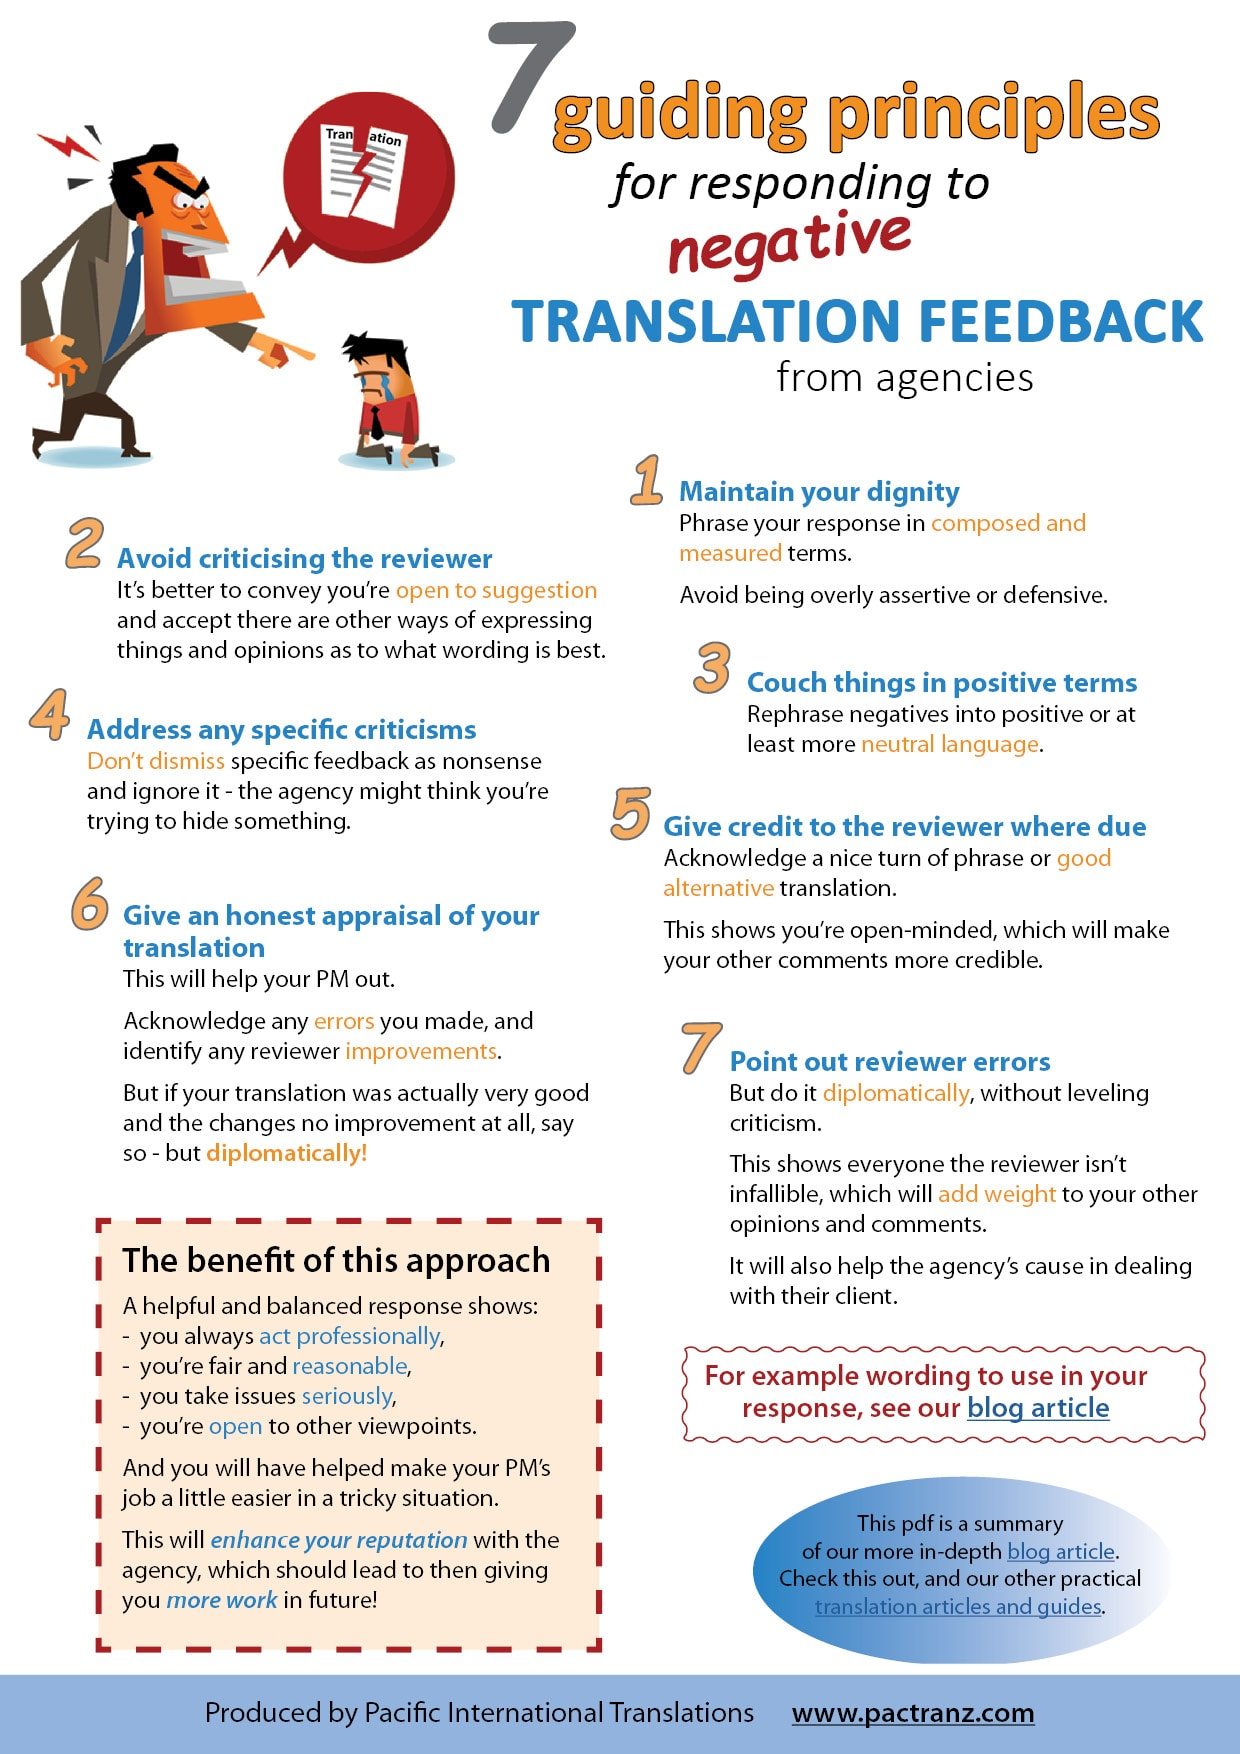 Translation feedback response guidelines